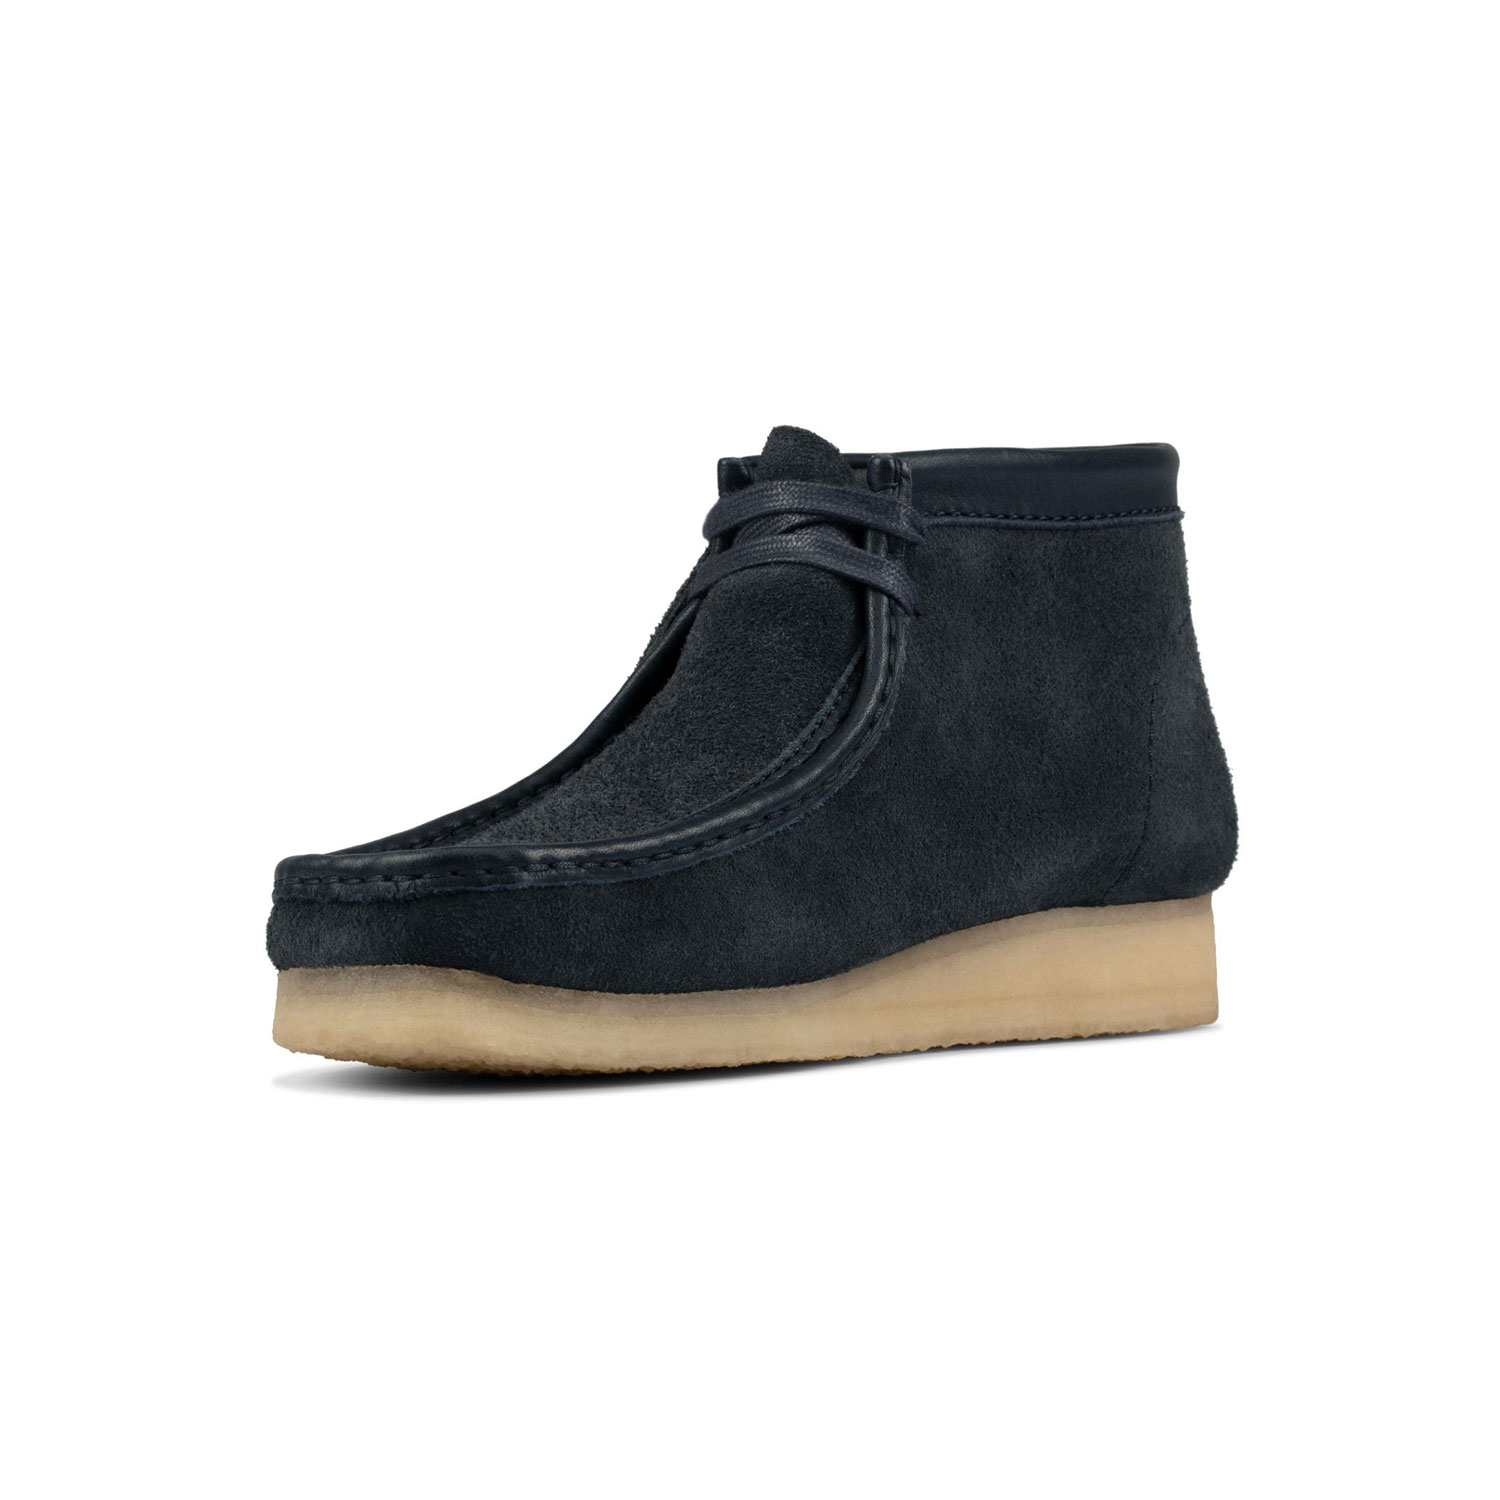 Clarks Wallabee Boot - Navy/Hairy Suede 2